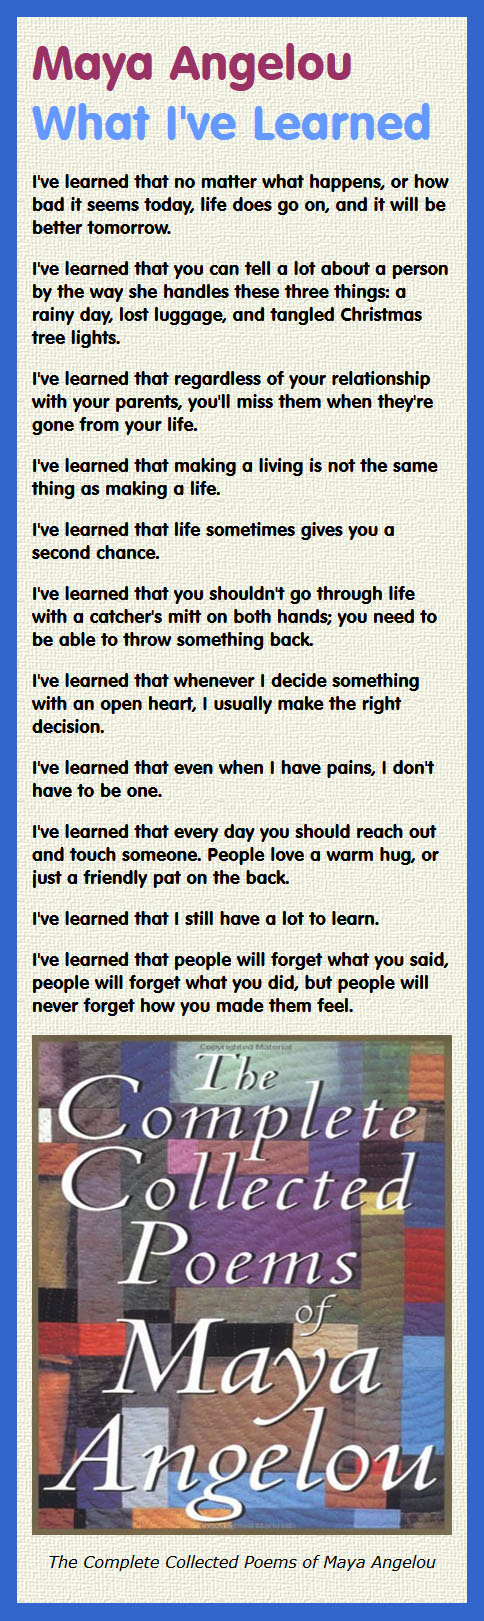 What I've Learned by Maya Angelou